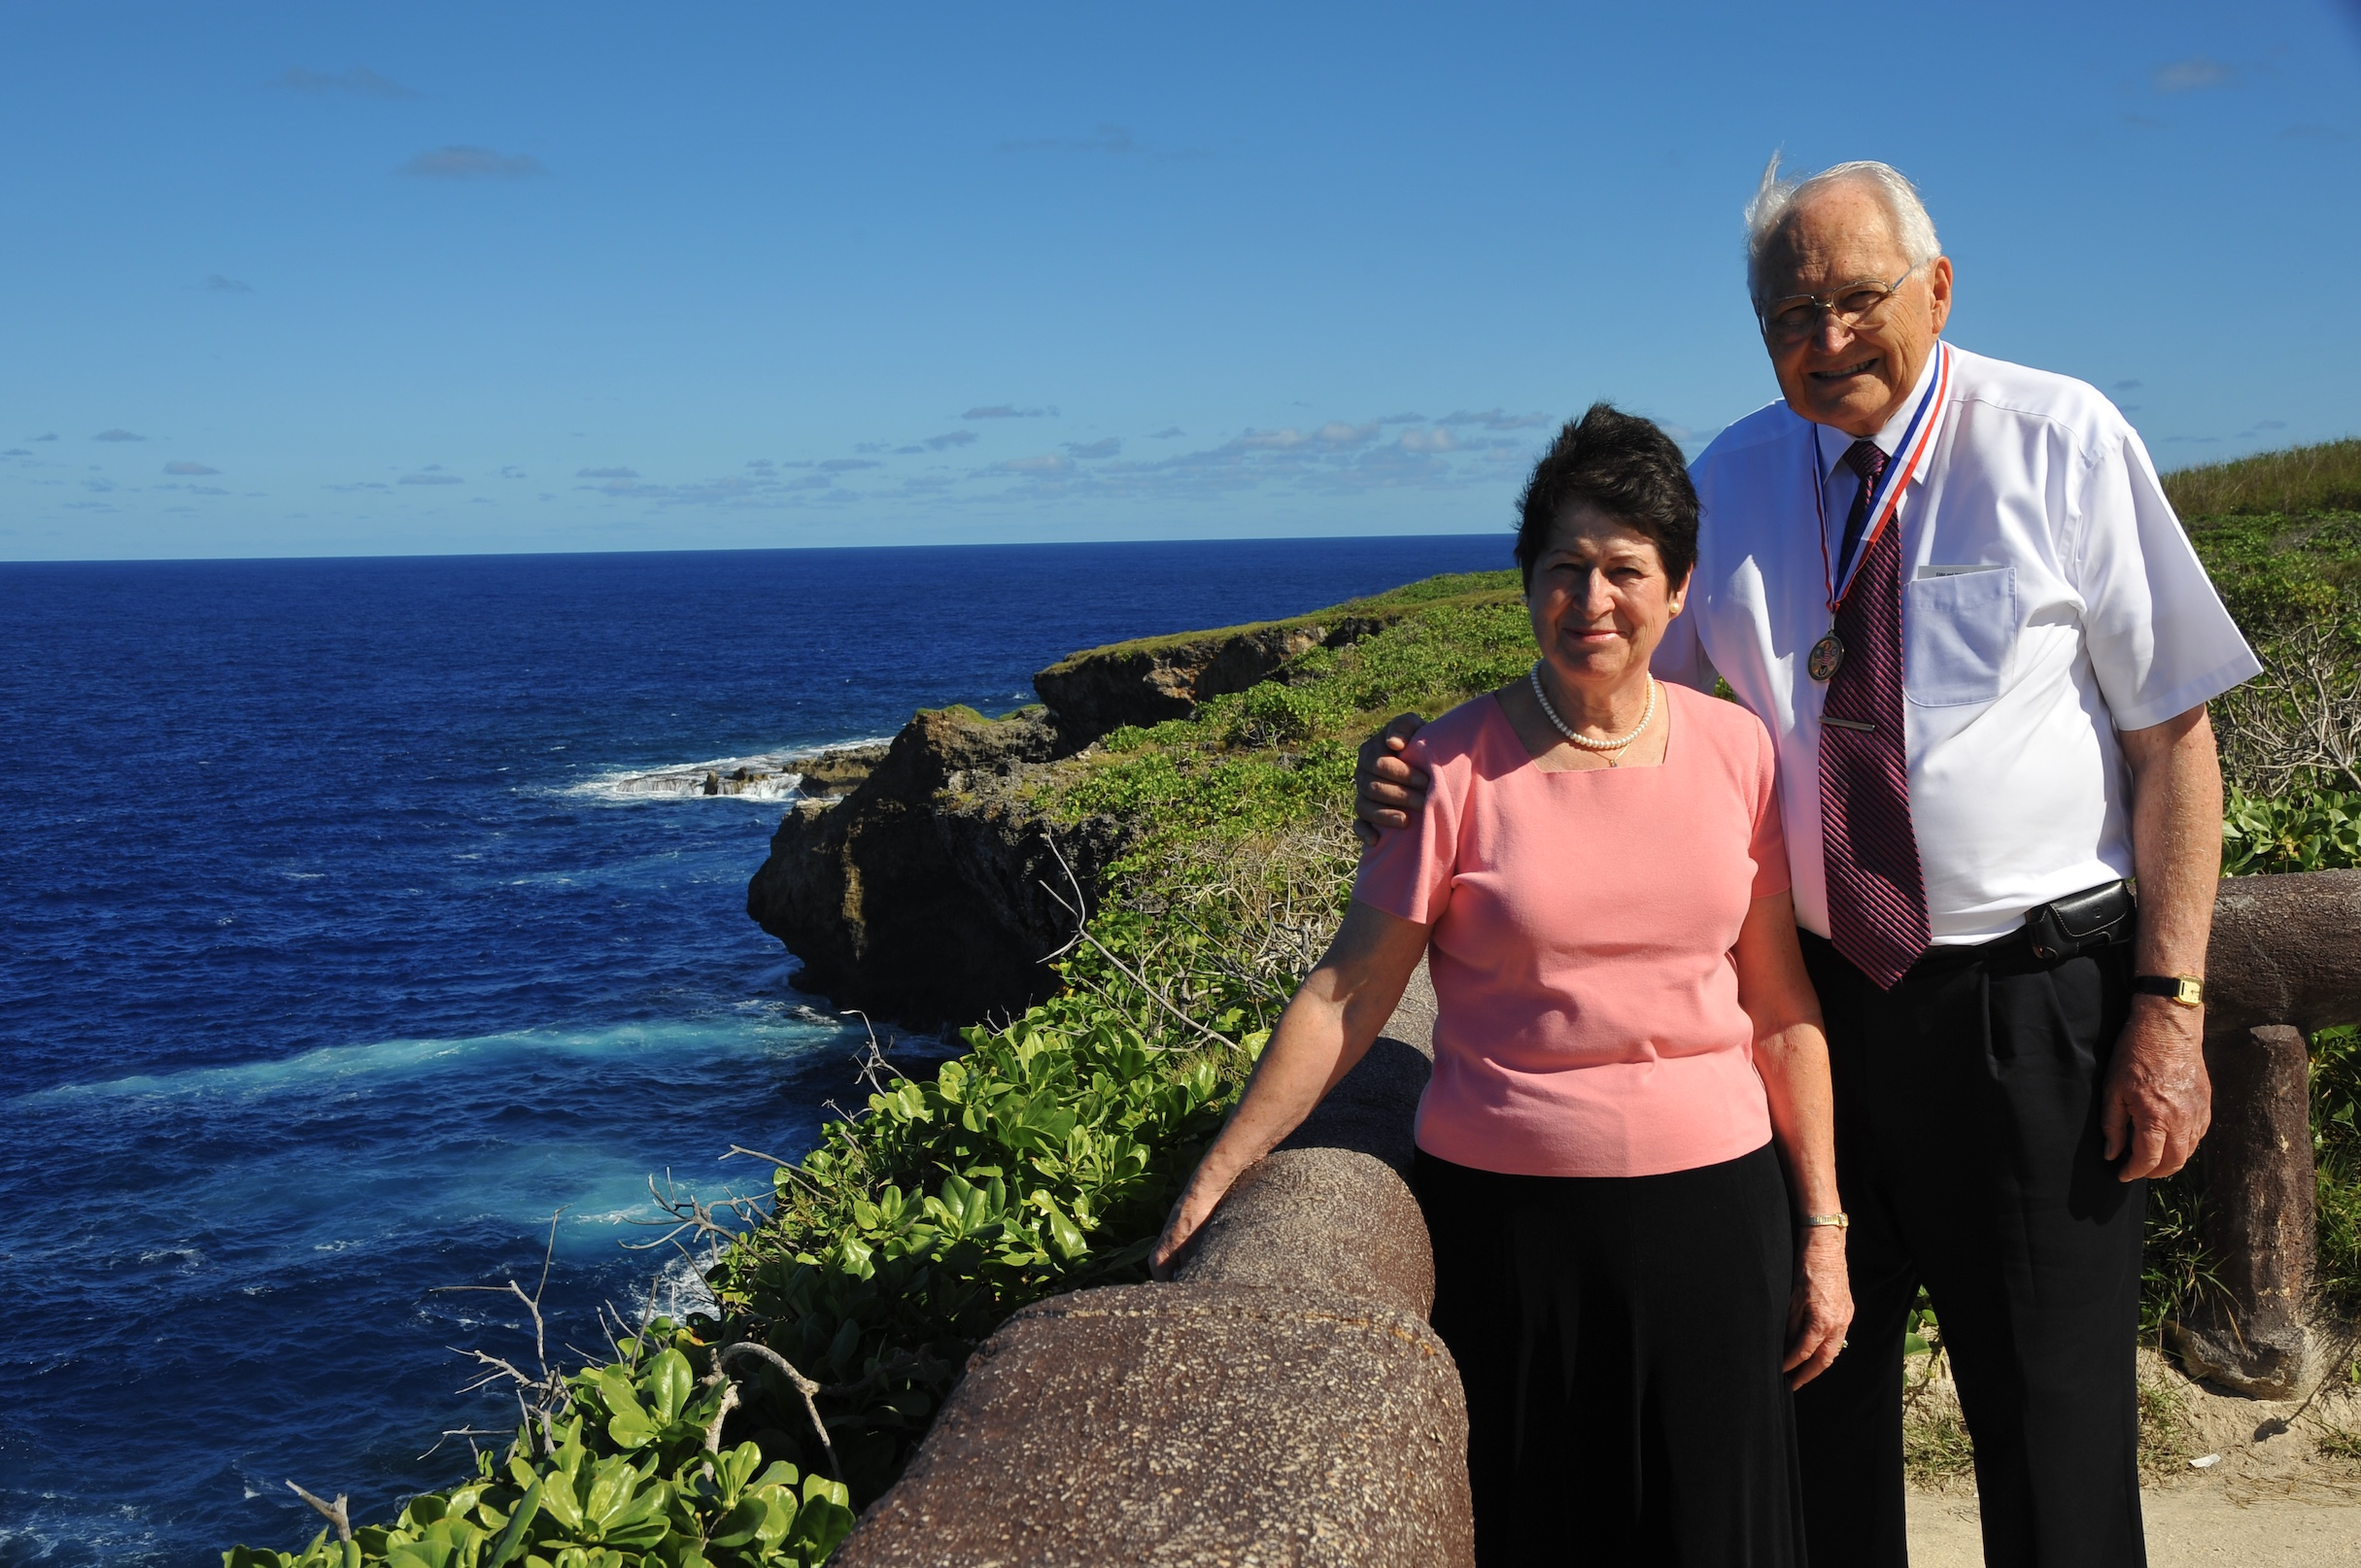 Elder L. Tom Perry and Sister Barbara Perry pause for a photo in Guam, where he created the first stake in January 2011.